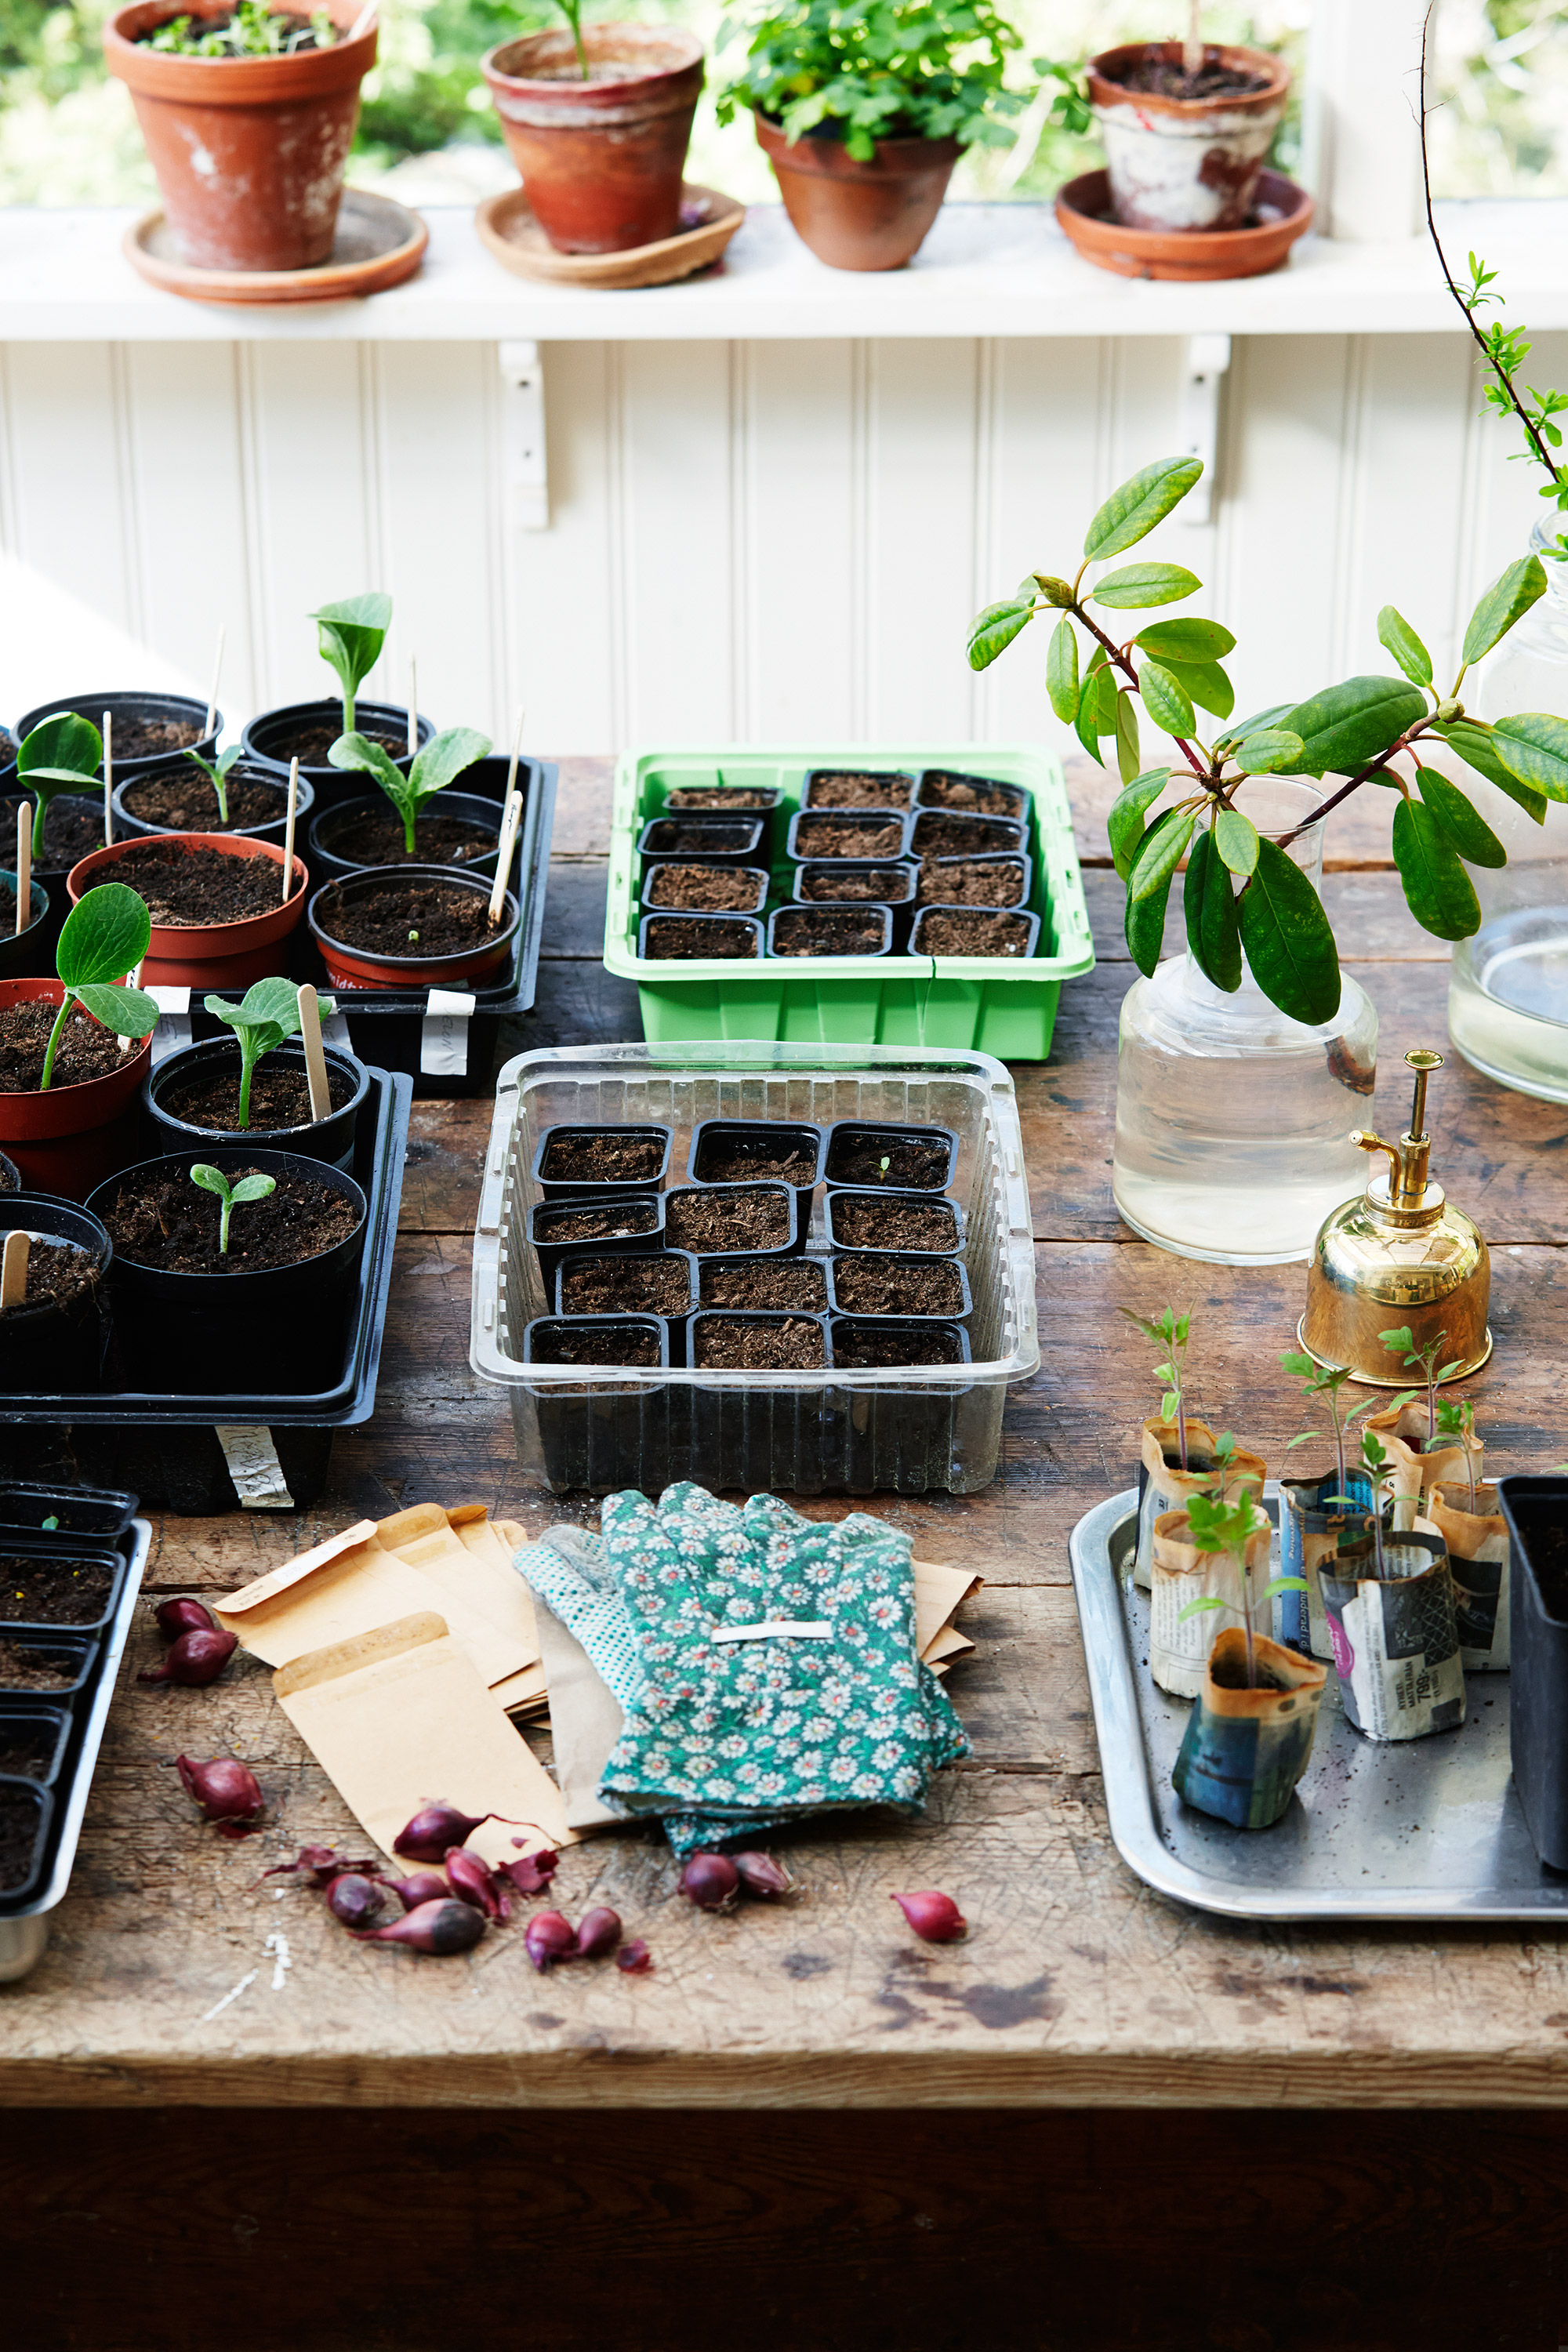 seedlings and potted plants in garden shed